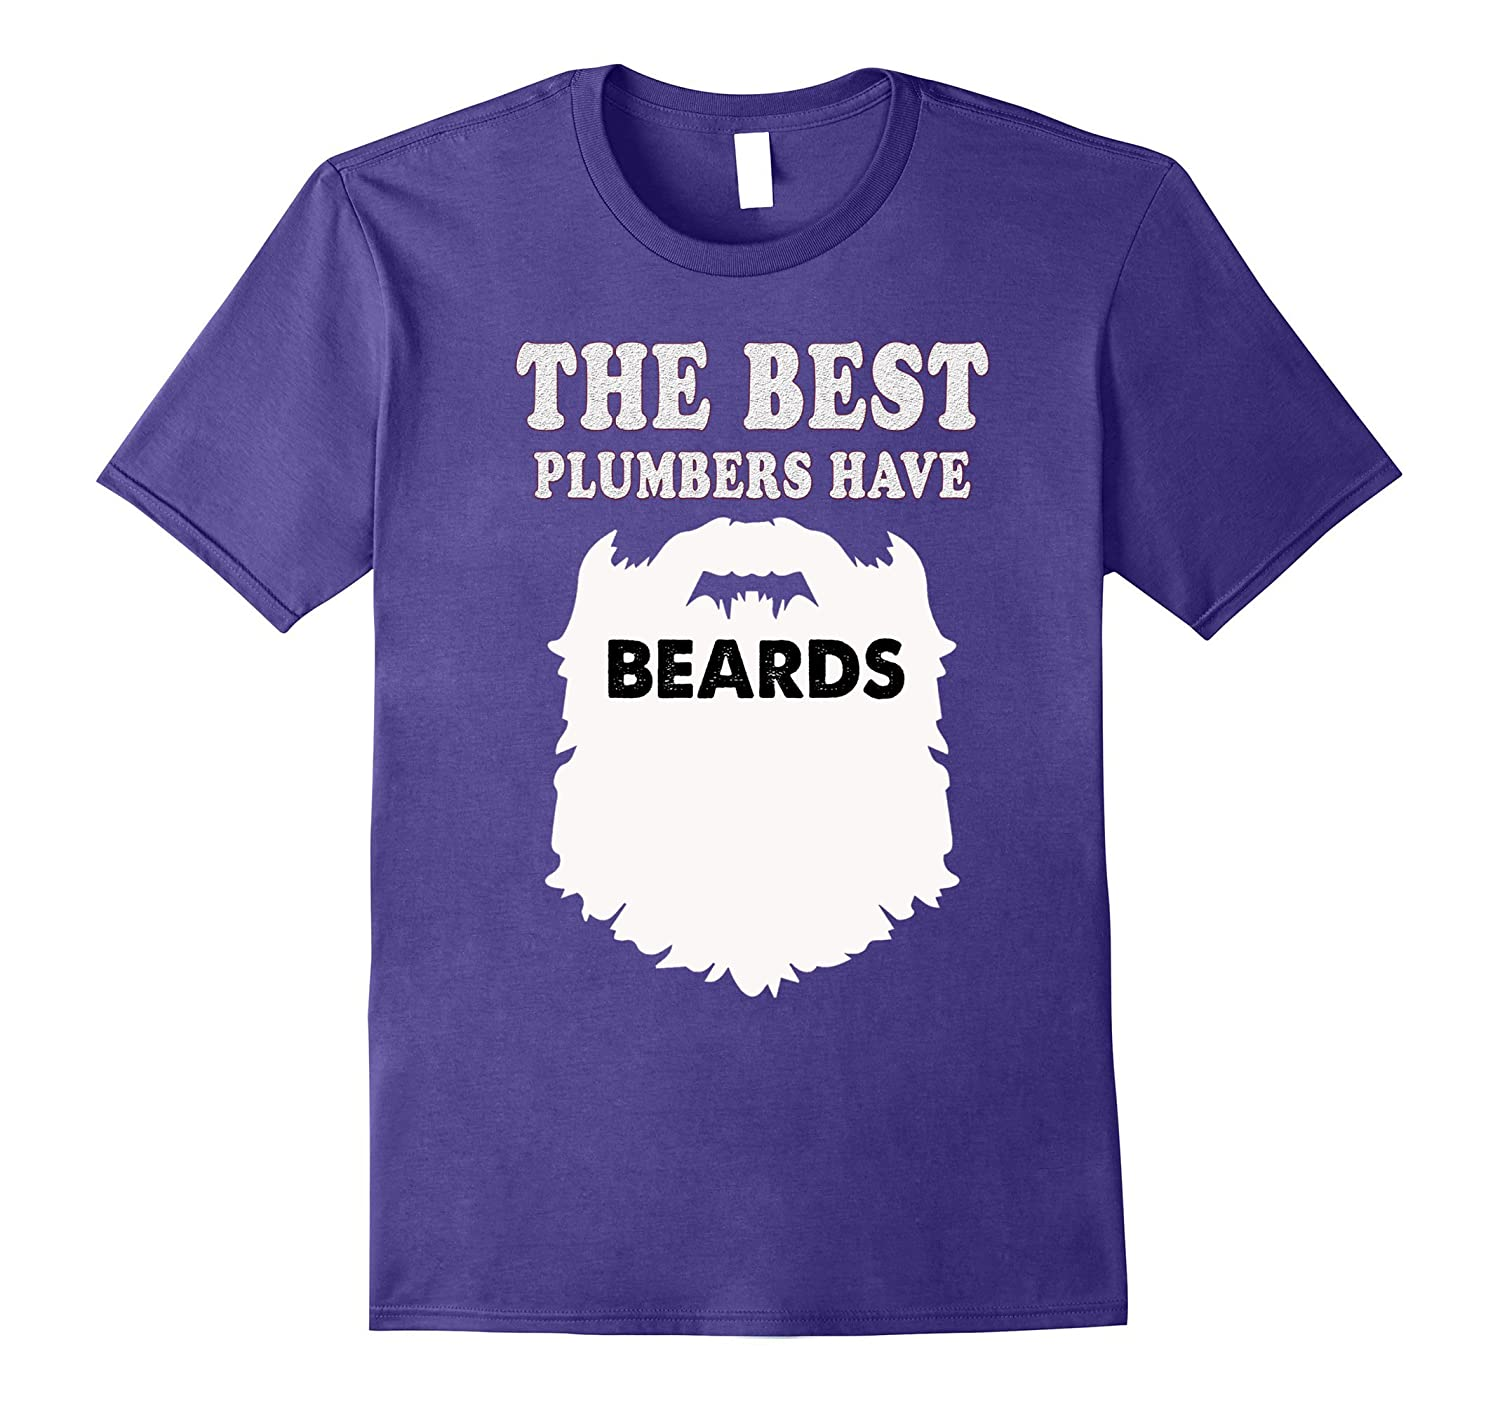 Bearded plumber Tshirt funny gift man him beards tees-TJ